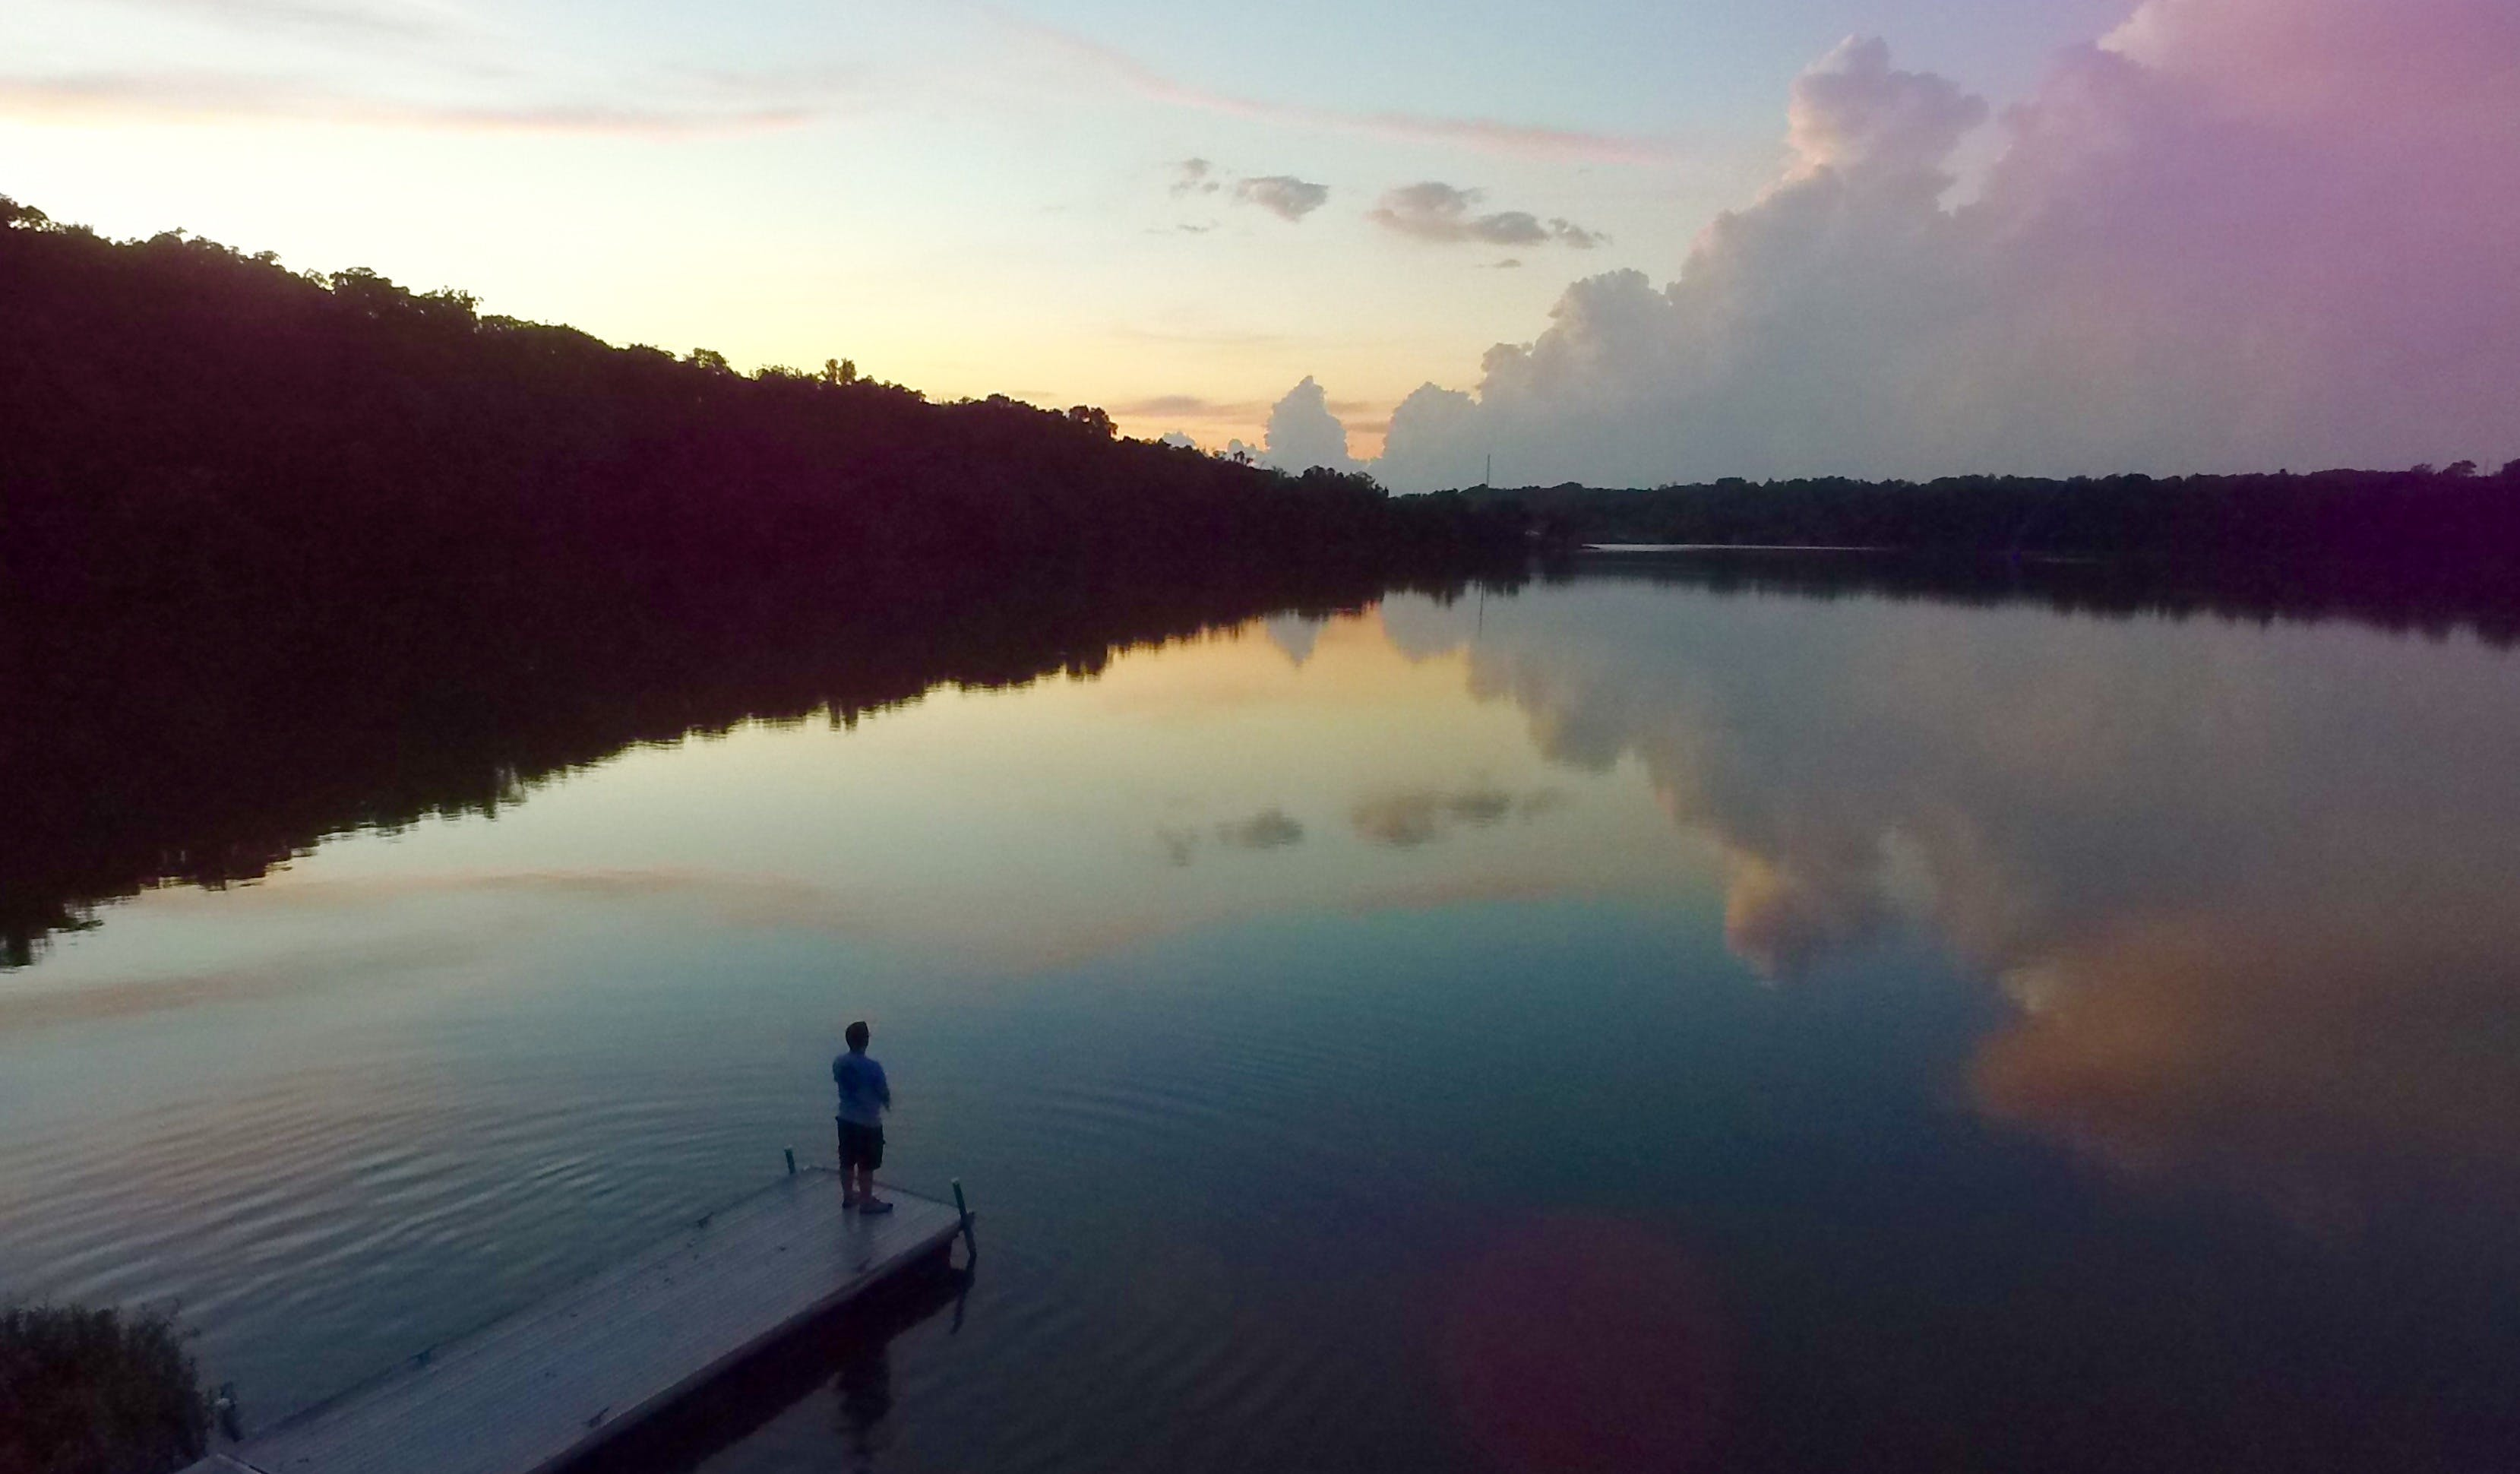 Man Standing on River Dock during Sunset